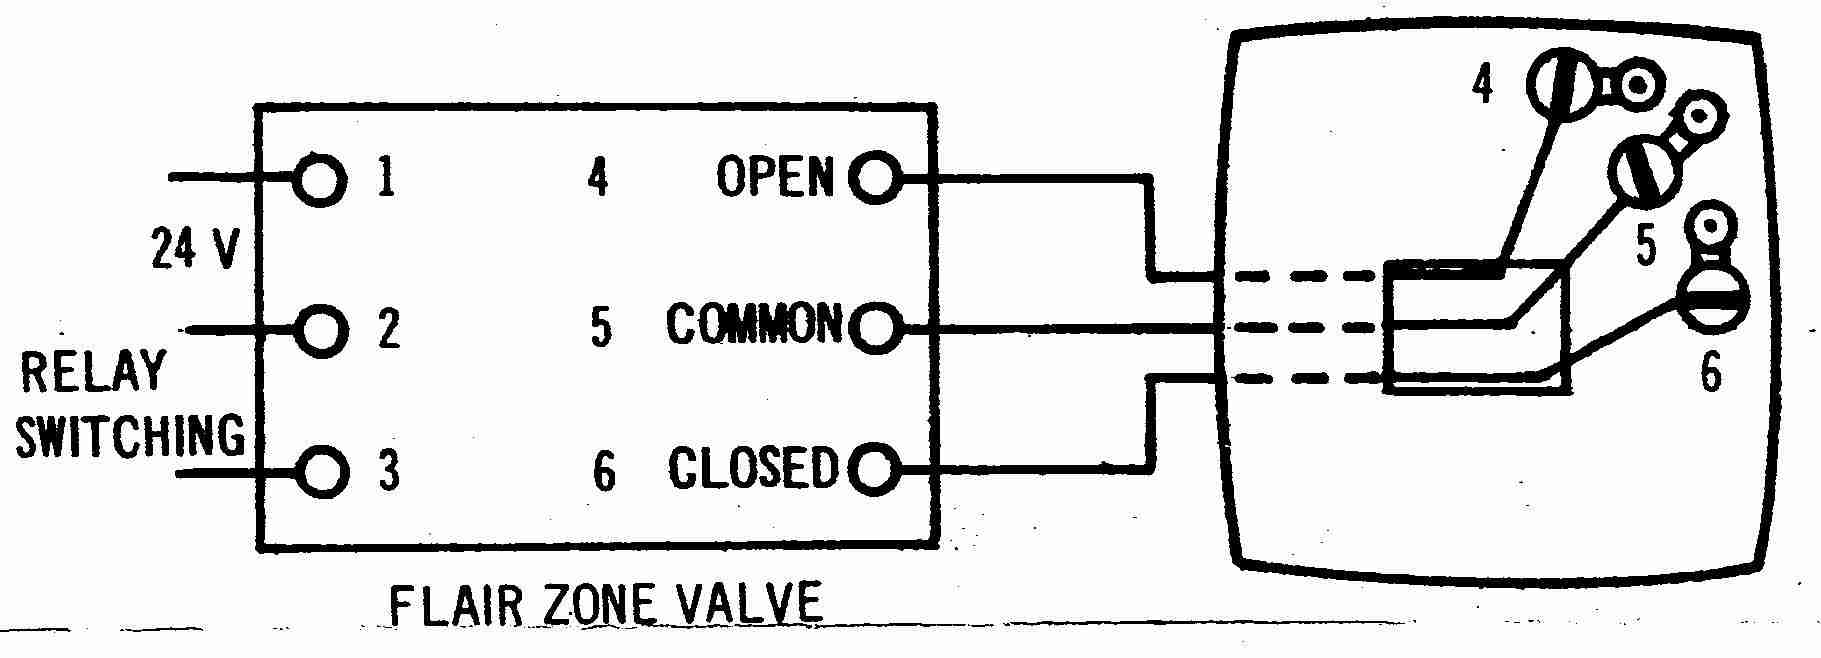 Central Heating Boiler Wiring Diagram Zone Valve Installation Instructions Guide To Flair 3 Wire Thermostat Controlling A